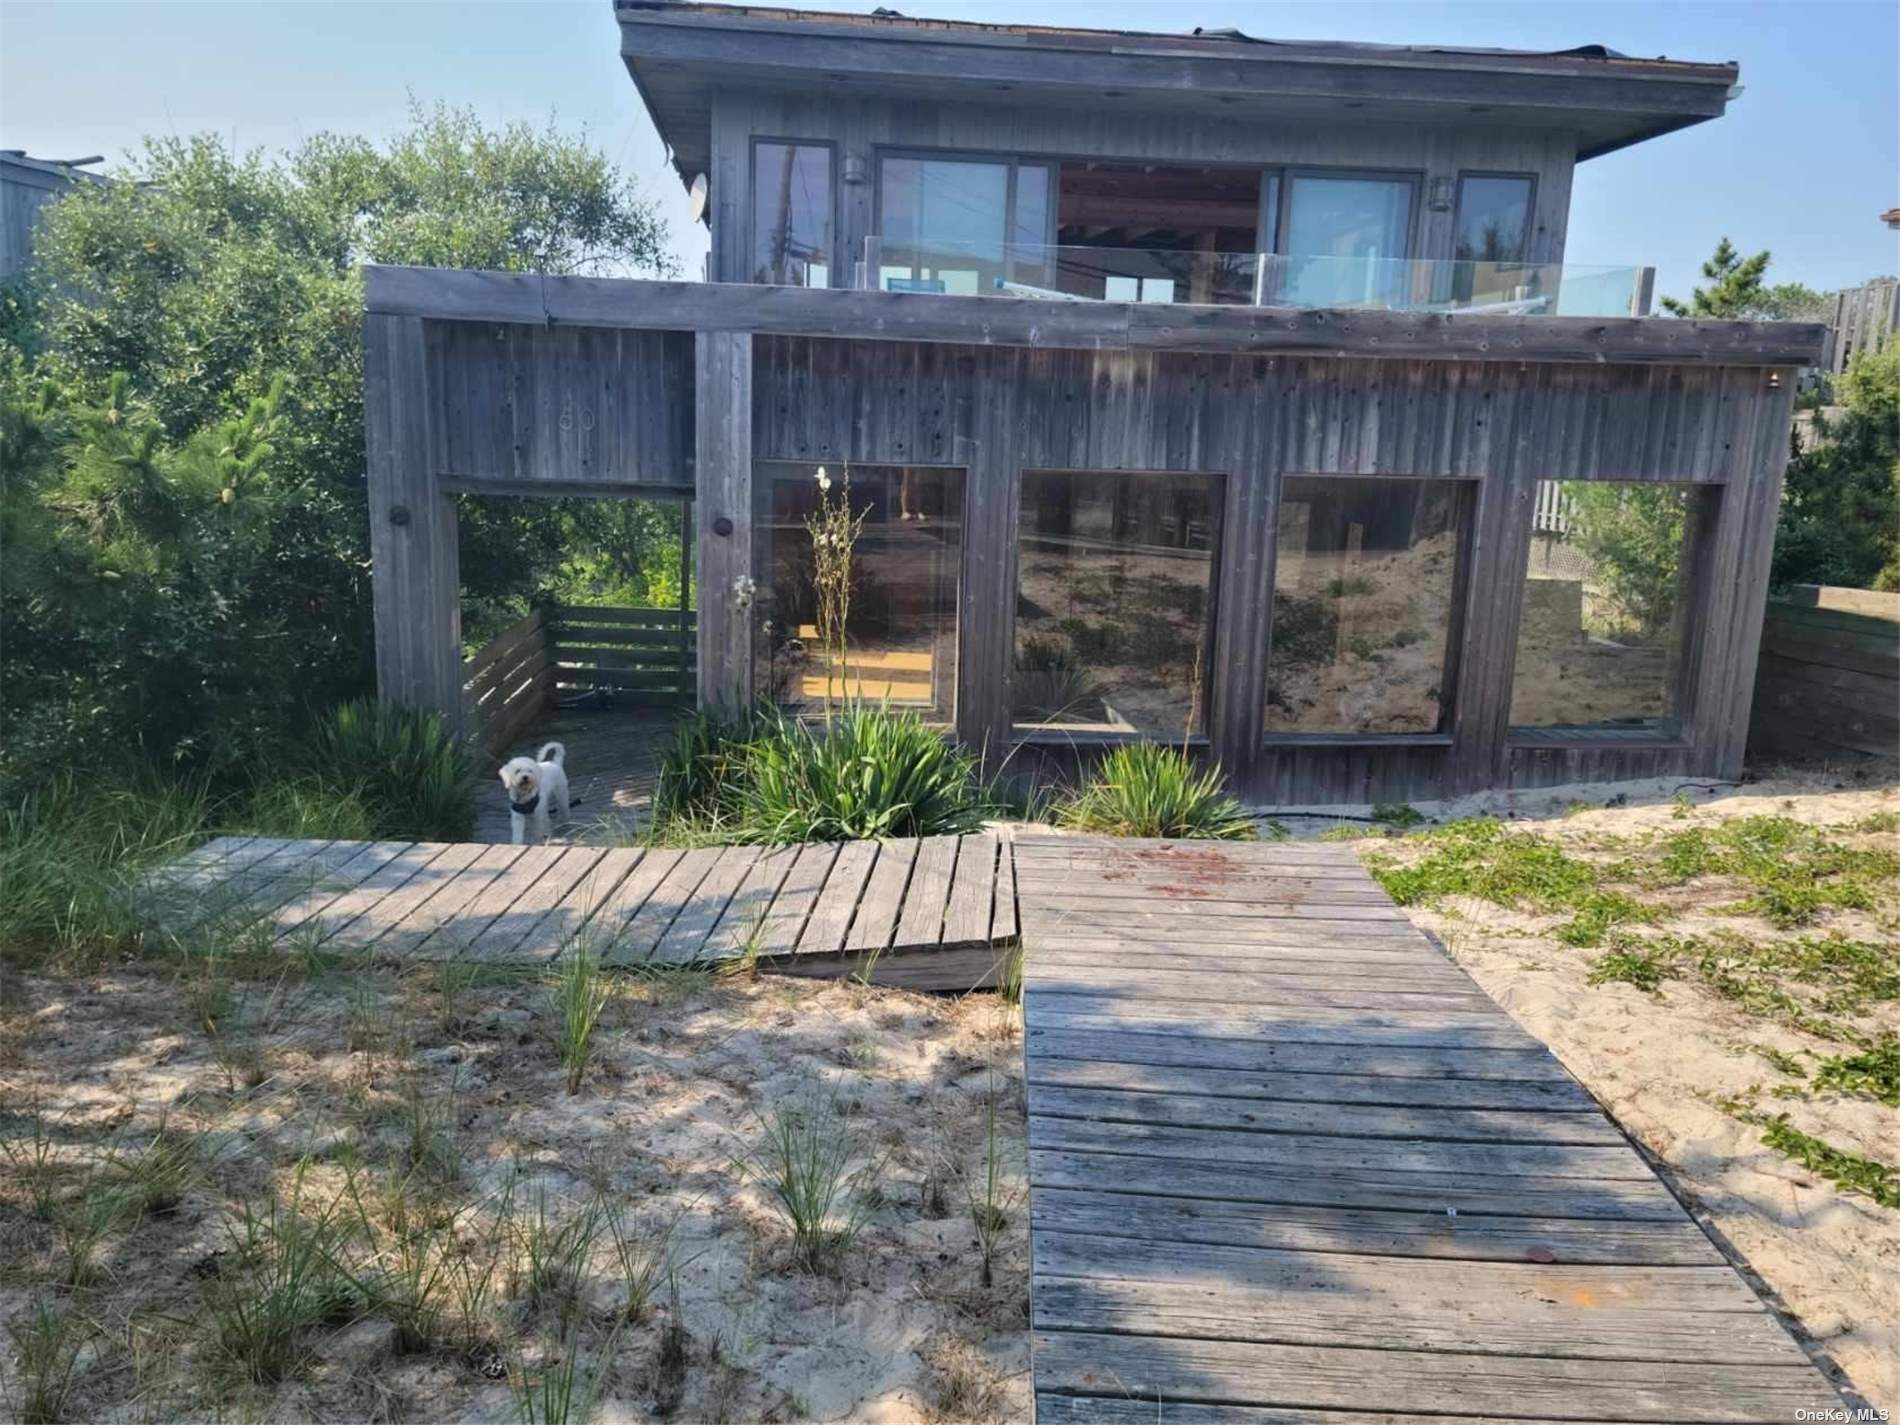 """Great opportunity to own a home in the Fire Island Pines,  Great Rental Possibility. Price based on Sale """"AS IS"""" or Fully Renovated Priced at $1,200,000 .3 Bedroom 3.5 Bath Contemporary w/ Master Bedroom, Master Bathroom on Main Floor.  2nd & 3rd Bedroom w/ Private Bathrooms.  Kitchen w/ Balcony.  Dining Room & Living Room w/ Cathedral Ceilings & Spacious Balcony w/ Water Views.  Den w/ sliders to back deck."""